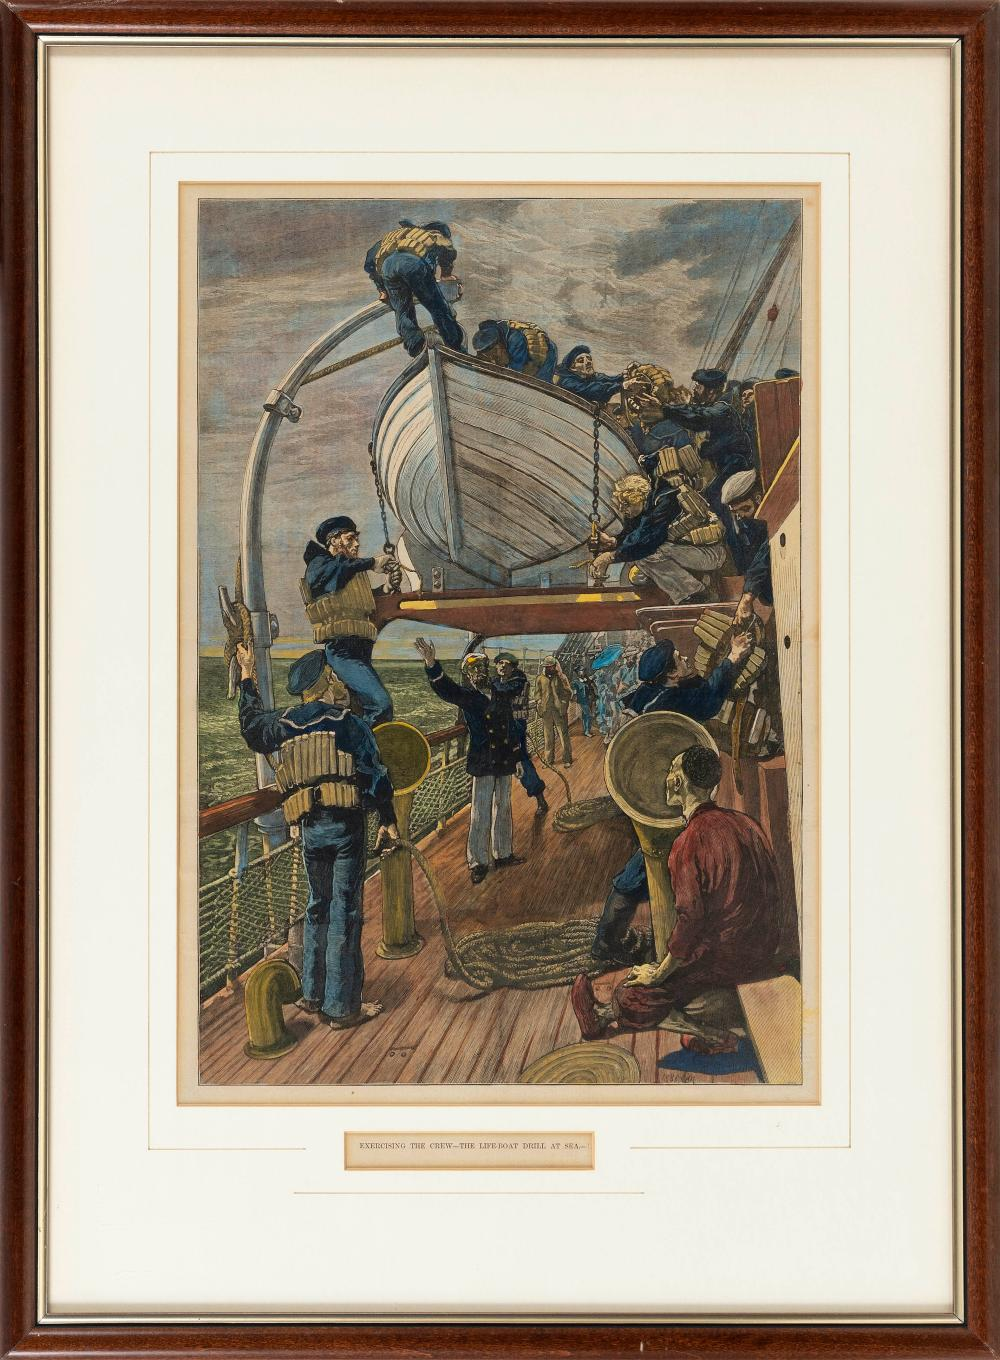 """COLOR LITHOGRAPH """"EXERCISING THE CREW - THE LIFEBOAT DRILL AT SEA"""" Dated 1881 On paper, 18"""" x 12.5"""" sight. Framed 26"""" x 20""""."""